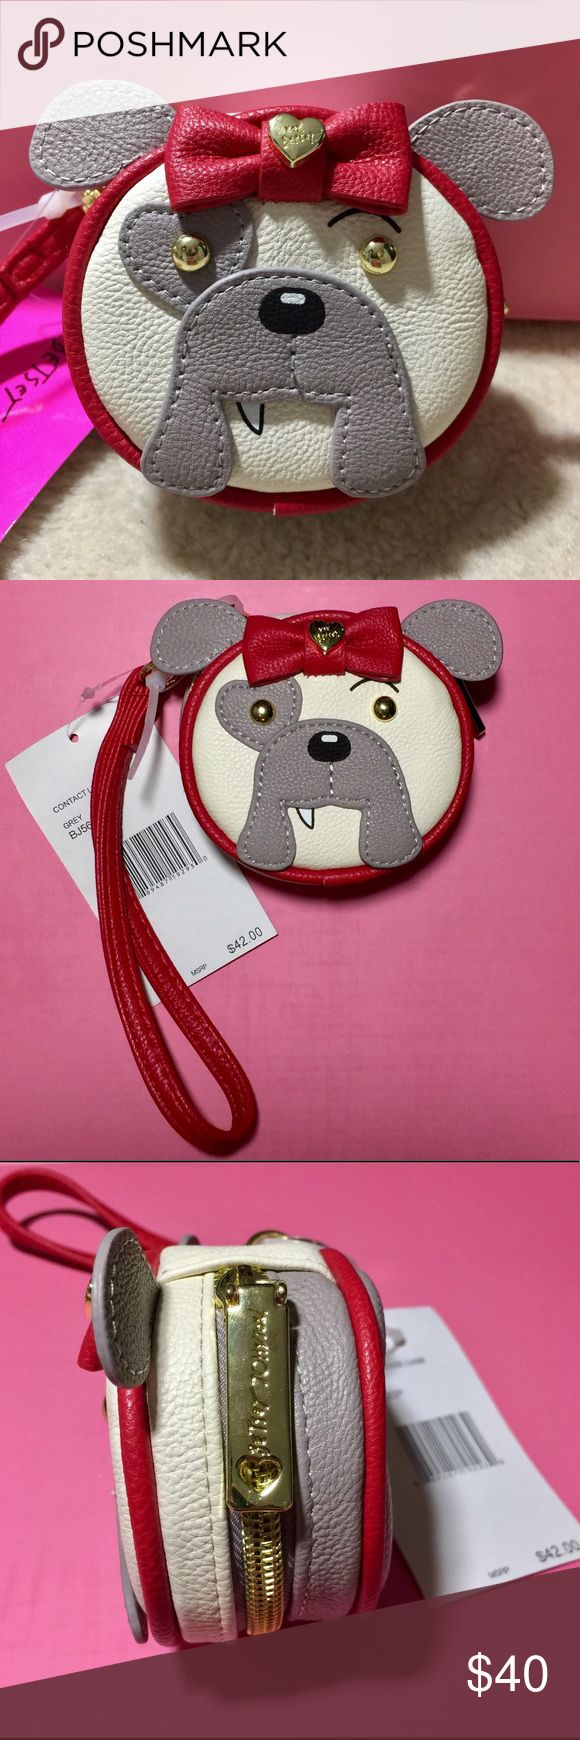 Betsey Johnson 🐶 Bulldog Contact Lens Wristlet 🐶 This is the cutest little contact lens case ever! ❤️🐶 What's more adorable than bulldog wearing a big red Betsey bow? 😍 This little guy can also be used as a coin purse, pill case or whatever your heart desires. The wristlet strap clips on so can also be removed. Open this cutie and there's two contact lens cases, little tweezers, a bottle and a mirror! Brand NWT and never used. Mirror is still covered in plastic. Paid $42.00 on Betsey's…